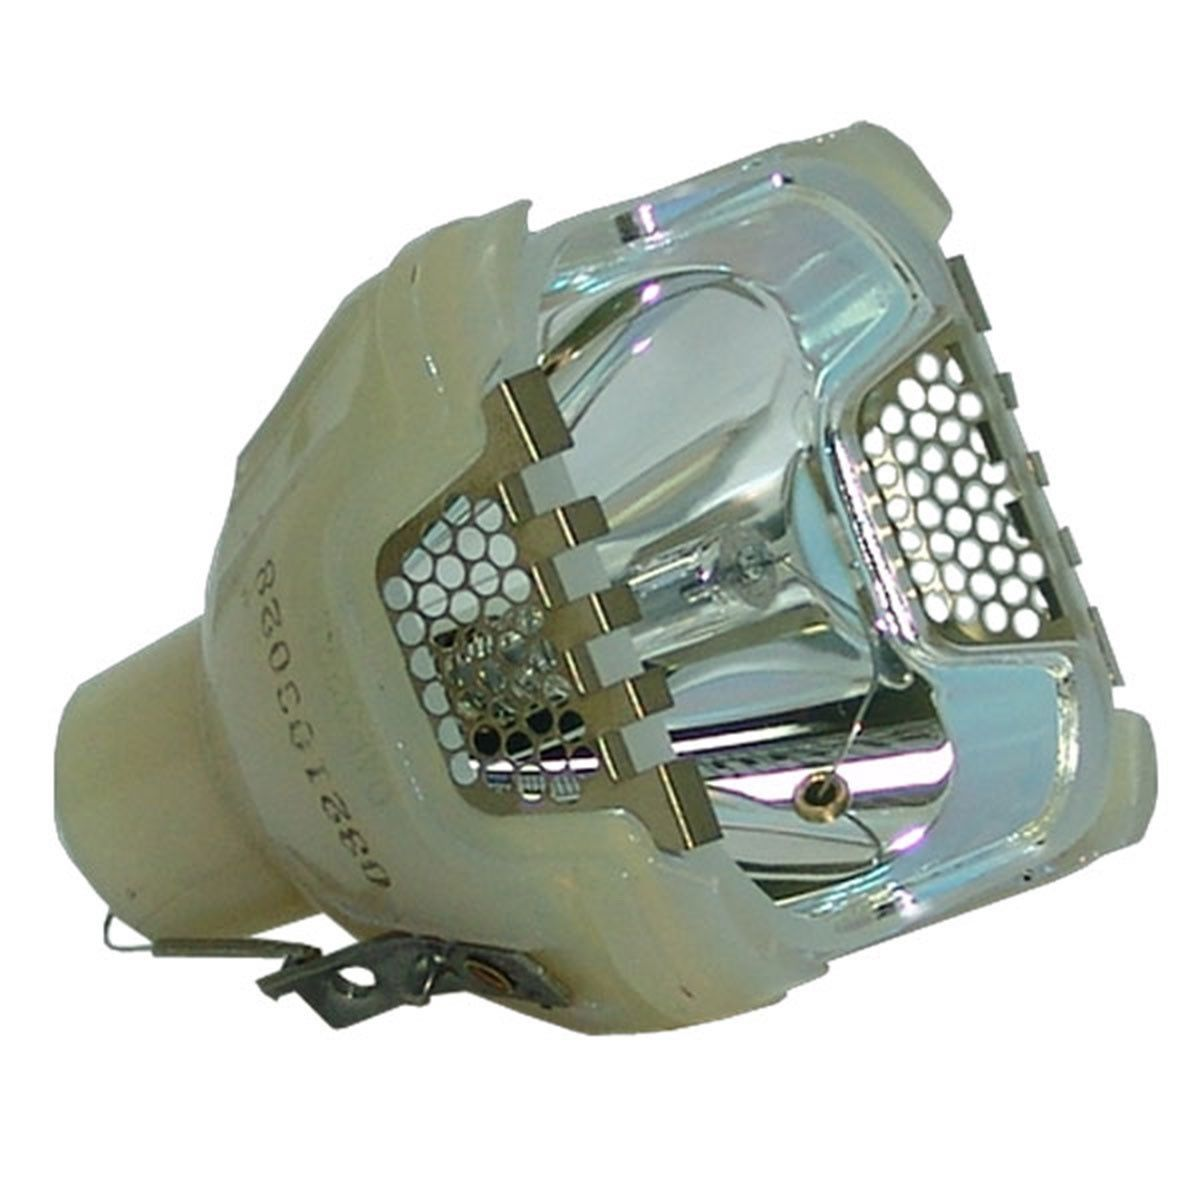 Compatible Bare Bulb LV-LP18 9268A001 for Canon LV-7210 LV-7215 LV-7220 LV7225 LV-7230 LV-7215E Projector Lamp Bulb with housing compatible bare bulb lv lp03 2013a001 for canon lv 7300 projector lamp bulb without housing